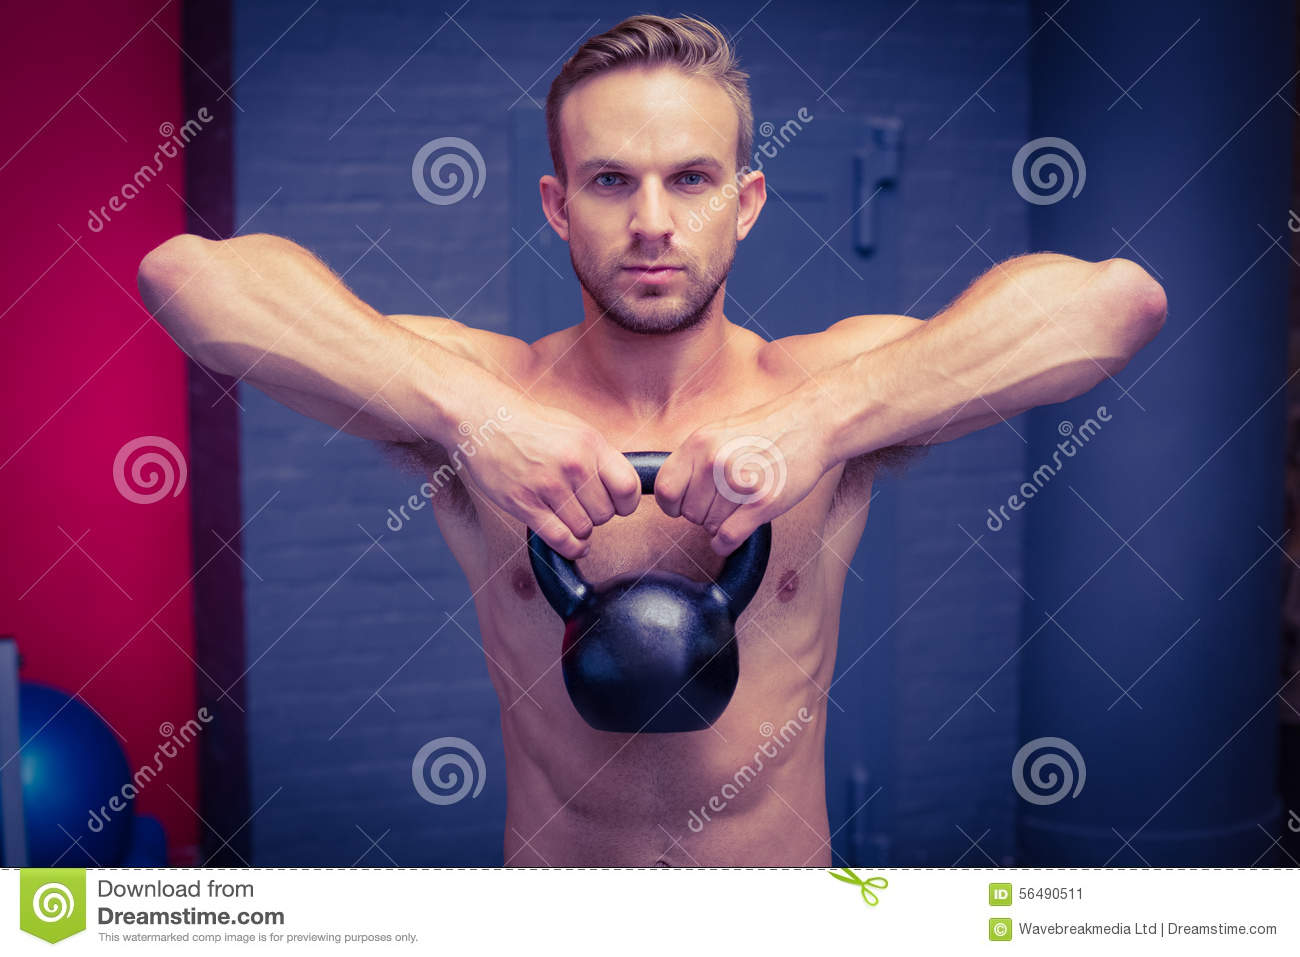 Homme musculaire soulevant un kettlebell